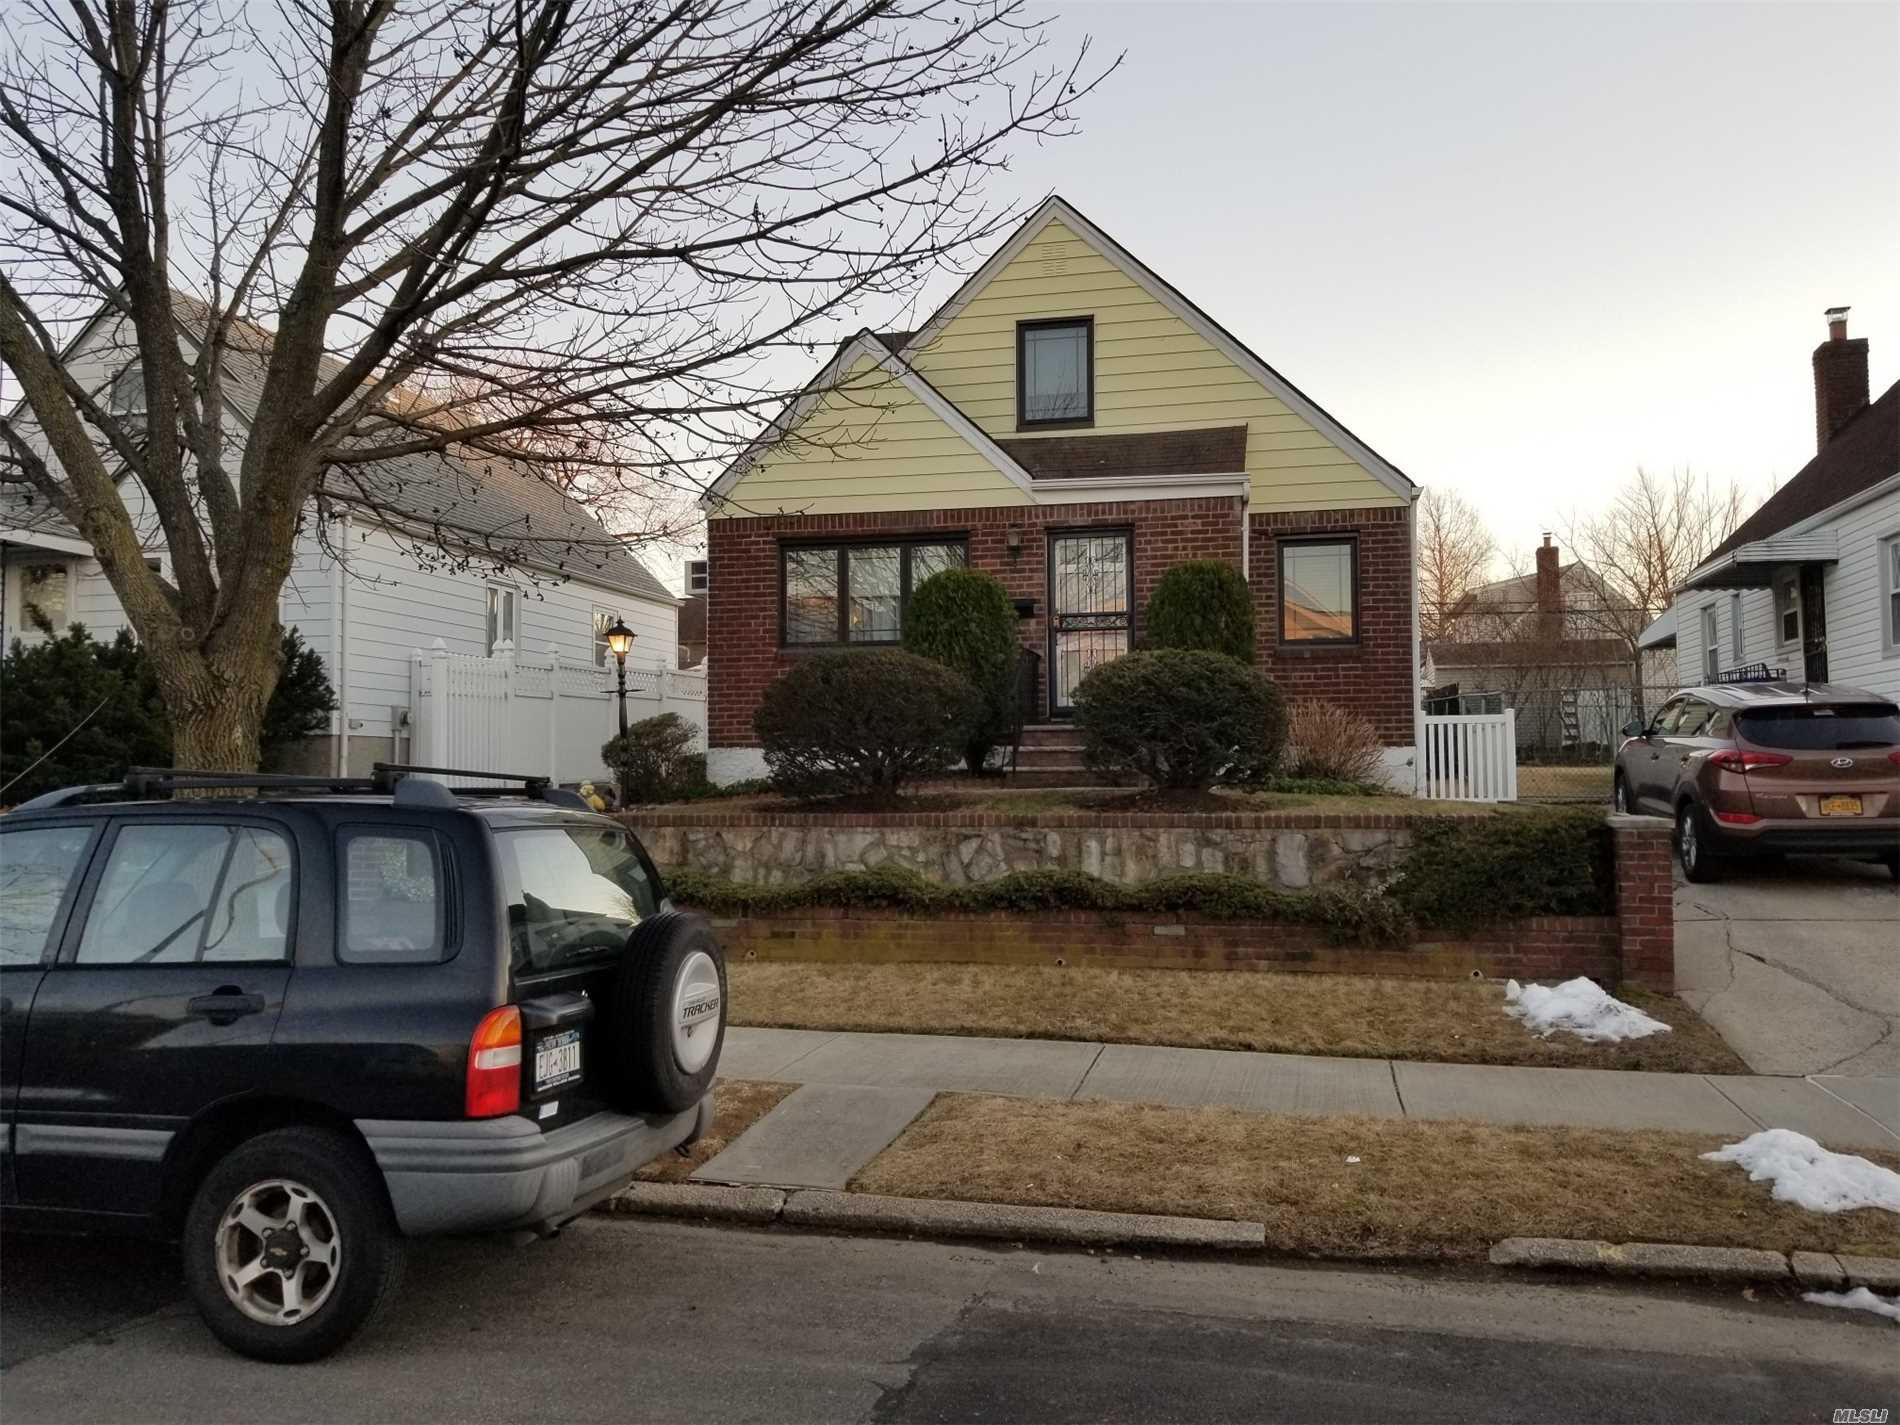 Highly Attractive Detached One Family Cape Home For Sale. Features One Large Bedroom On 1st Floor. Den Leading To Rear Of House Handicap Wood Ramp.Full Bath. Eik W/ Breakfast Nook. 2nd Floor Two Bedrooms & Plenty Of Storage. All New Windows Thru Home. Large Pvt. Backyard. One Car Detached Garage. Pvt. Driveway. Finished Basement W/ Family Room